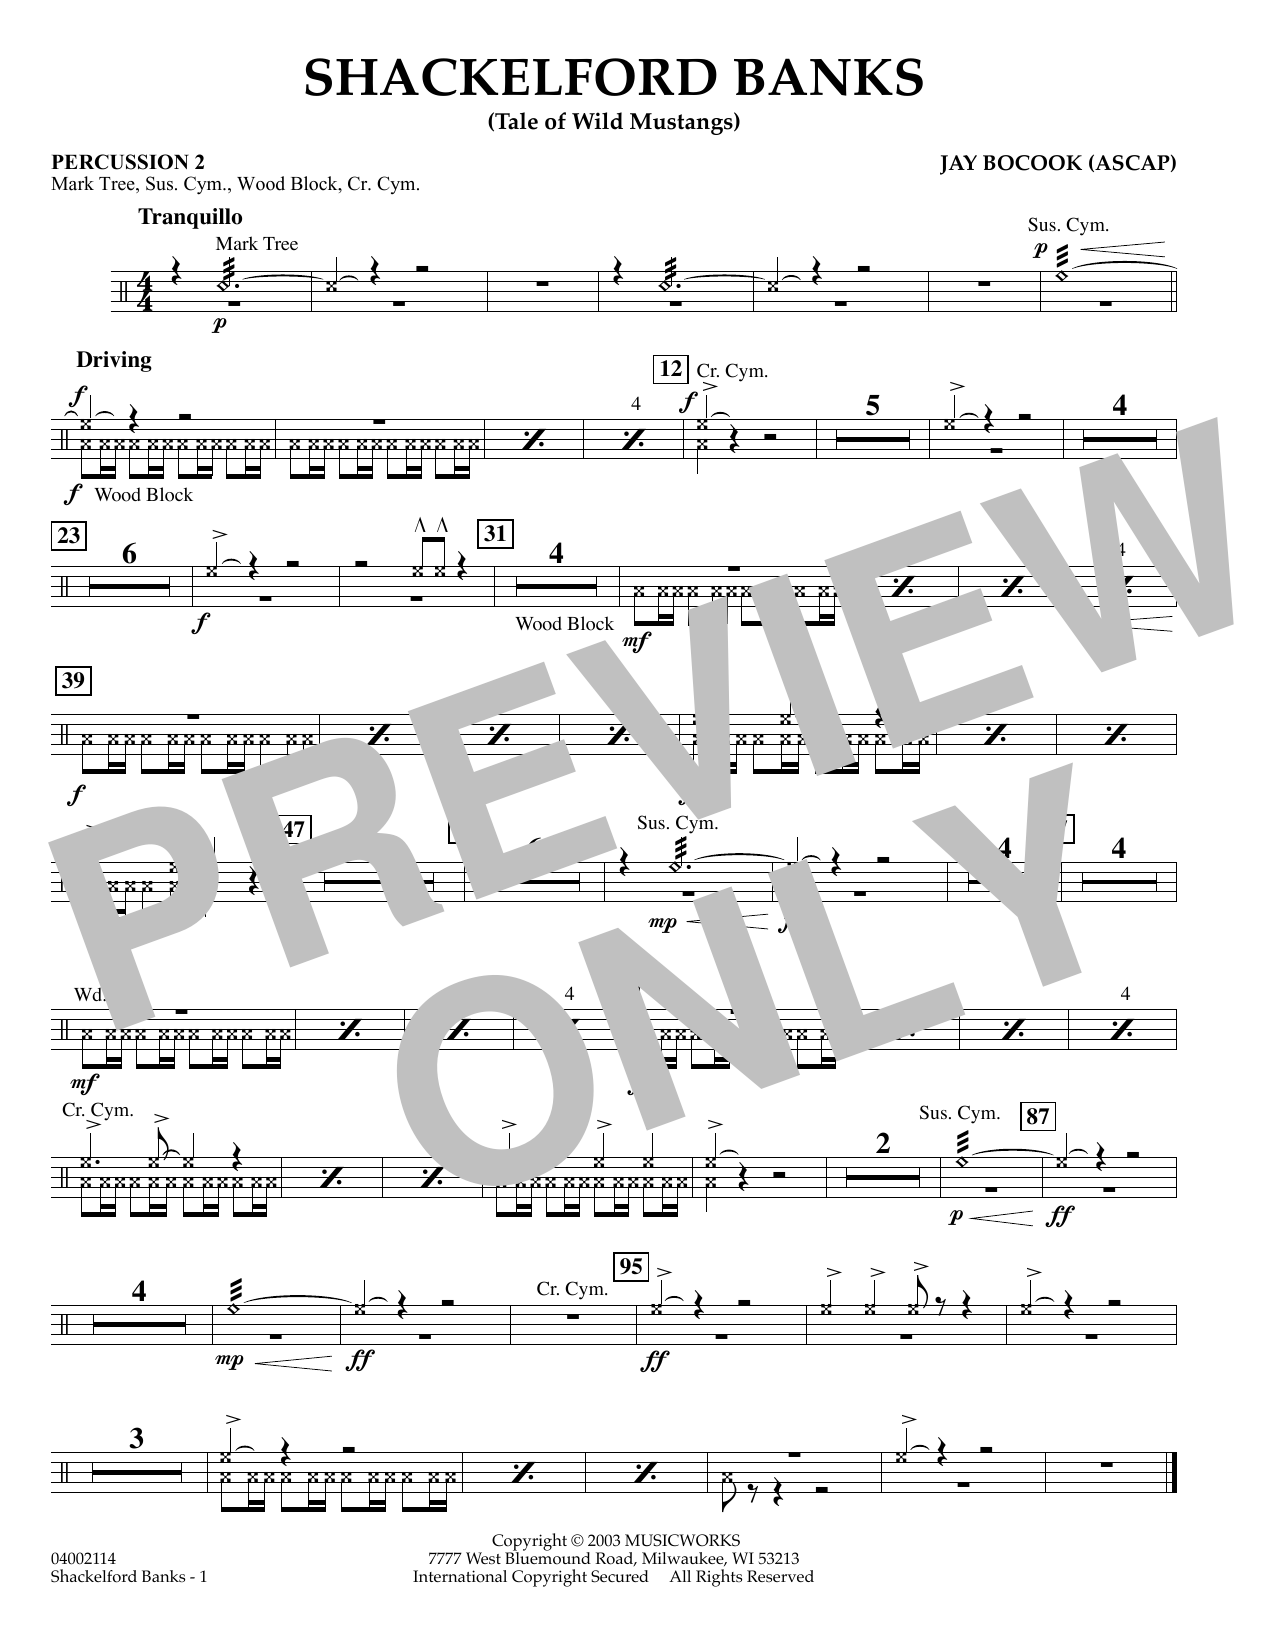 Jay Bocook Shackelford Banks - Percussion 2 sheet music preview music notes and score for Concert Band including 1 page(s)